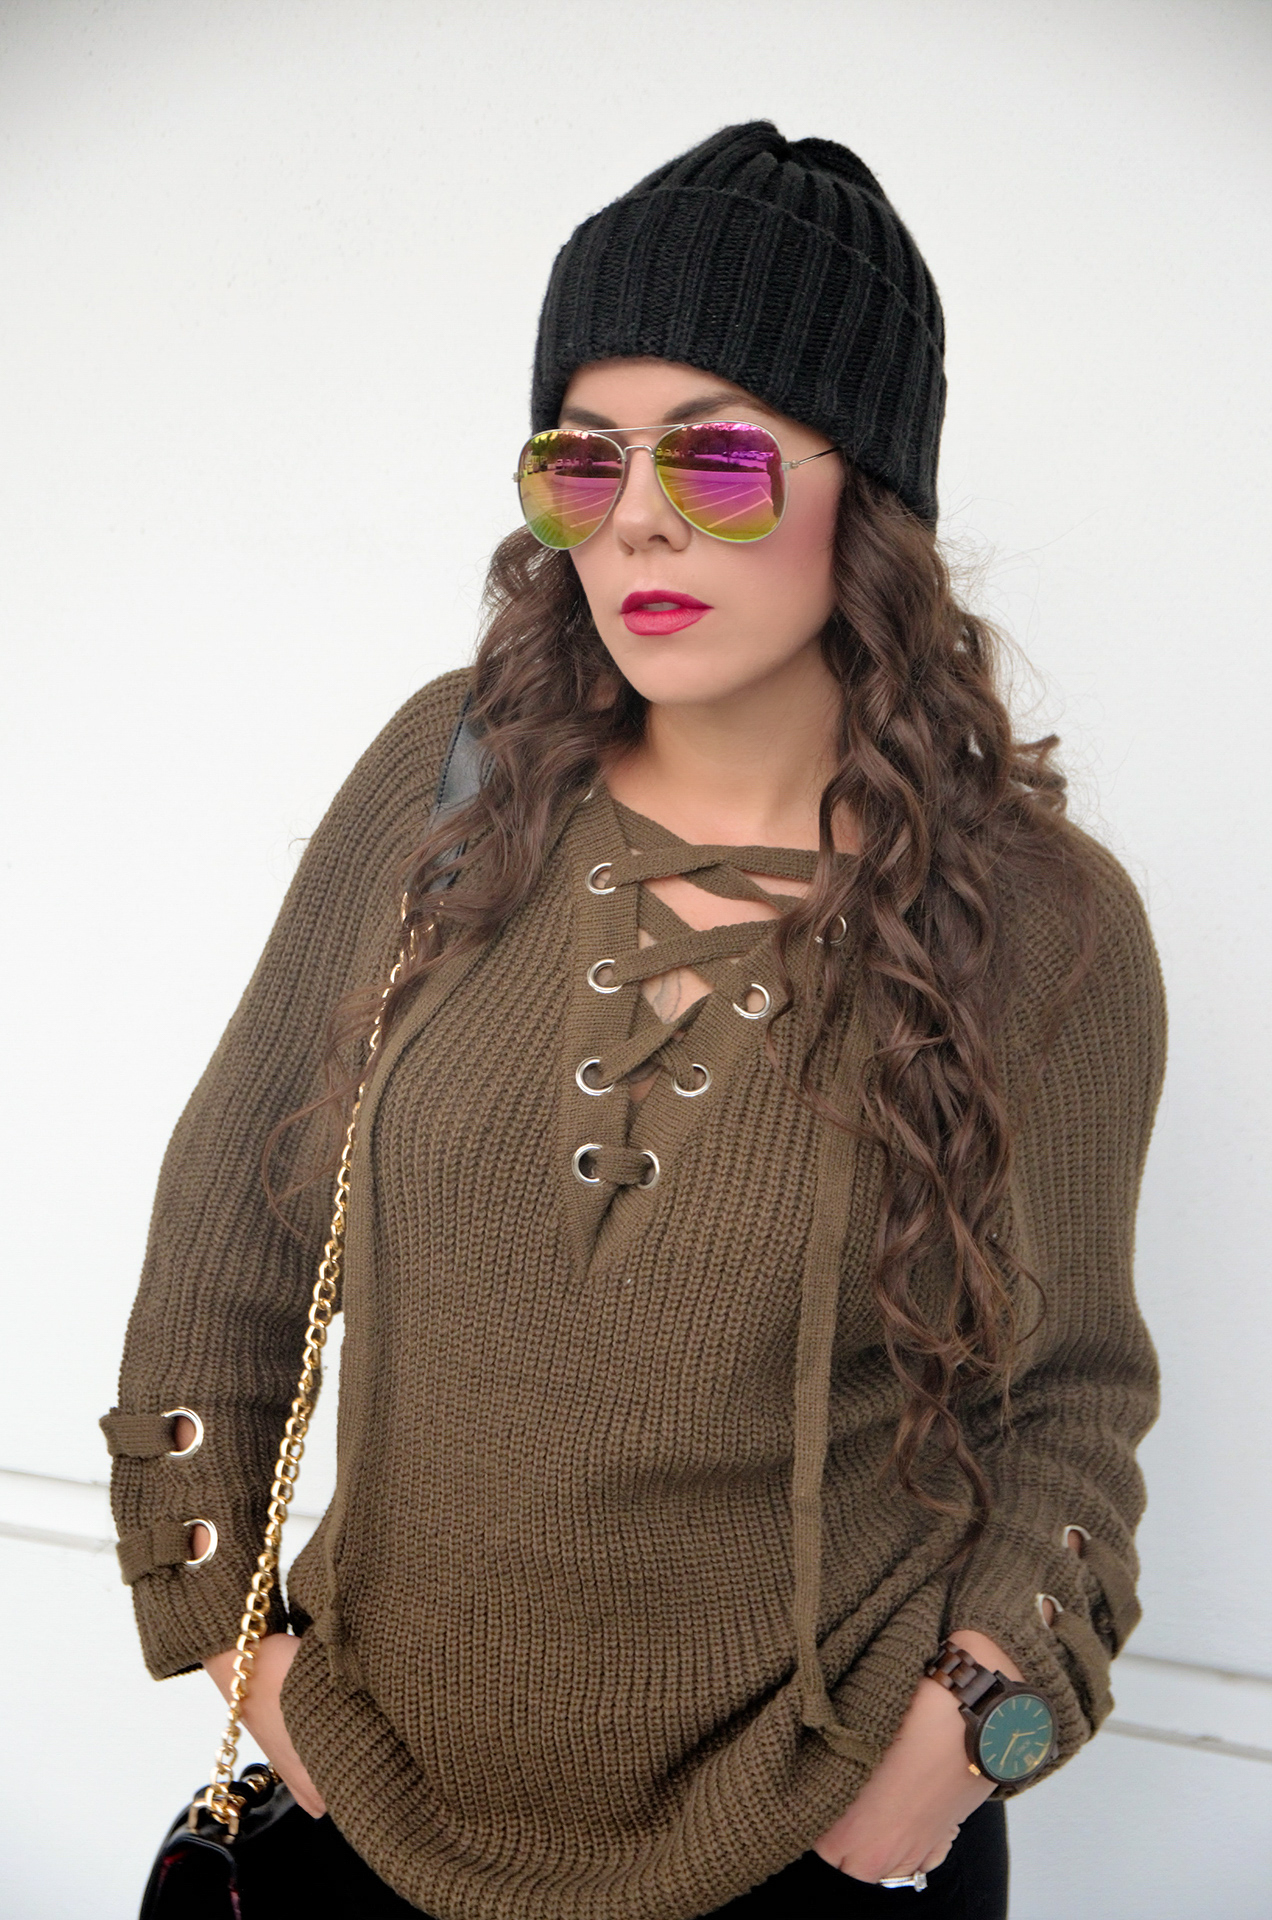 Casual Winter Vibes - Olive Green Lace Up Sweater   Ripped Jeans ... 7efd328db